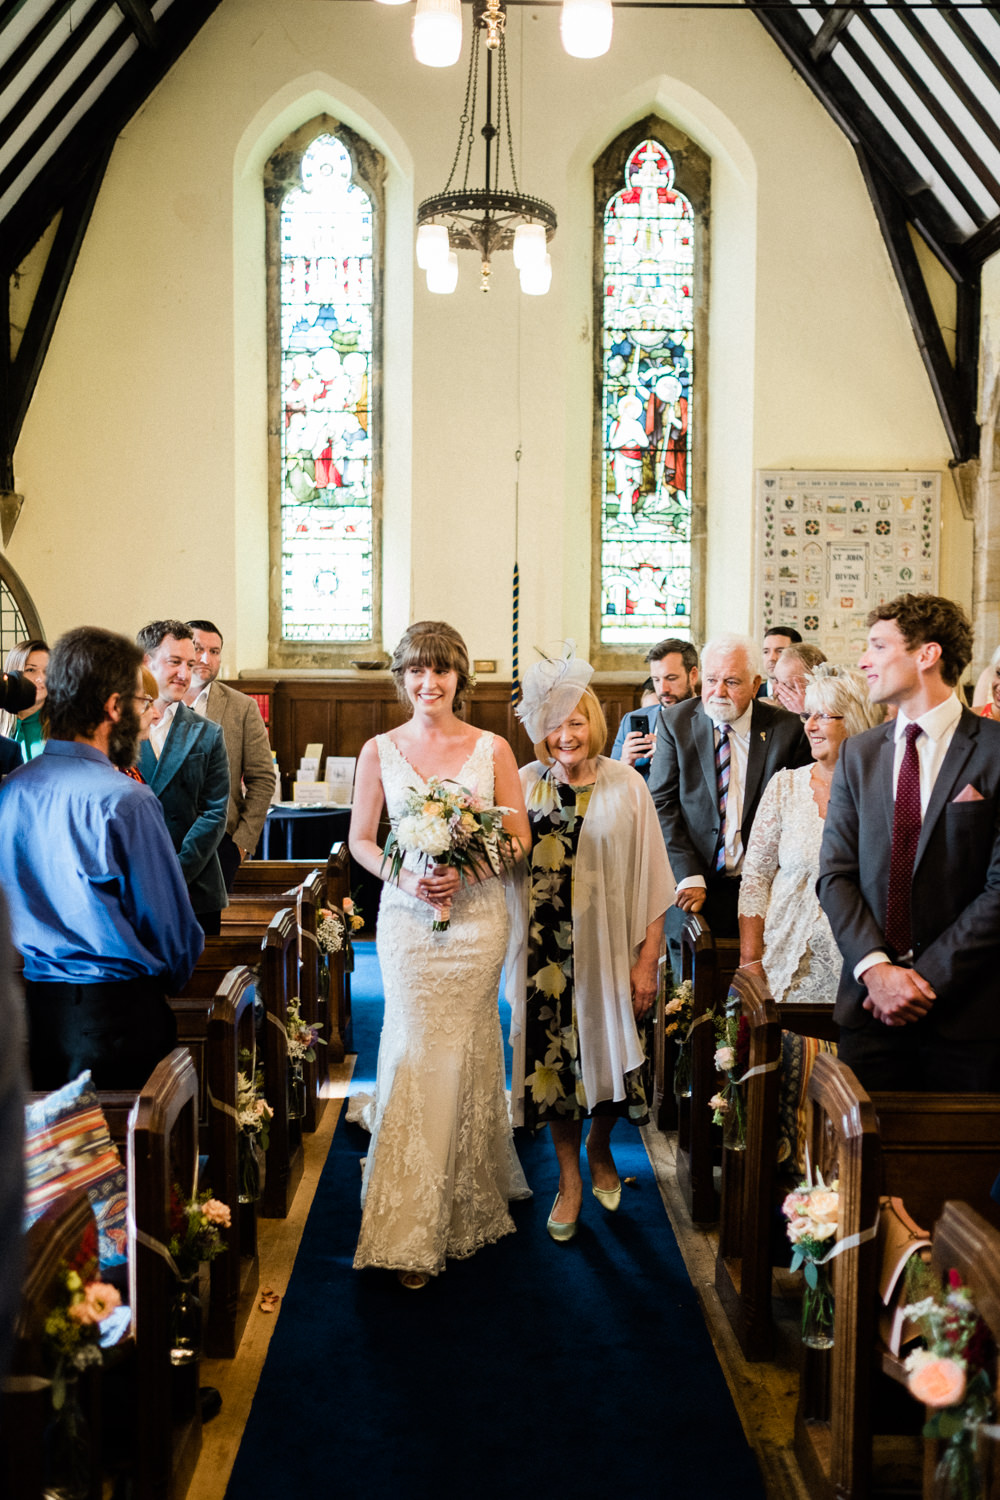 Bride Bridal Low V Neck Back Gown Dress Bouquet Utopia Broughton Hall Wedding Christopher Thomas Photography